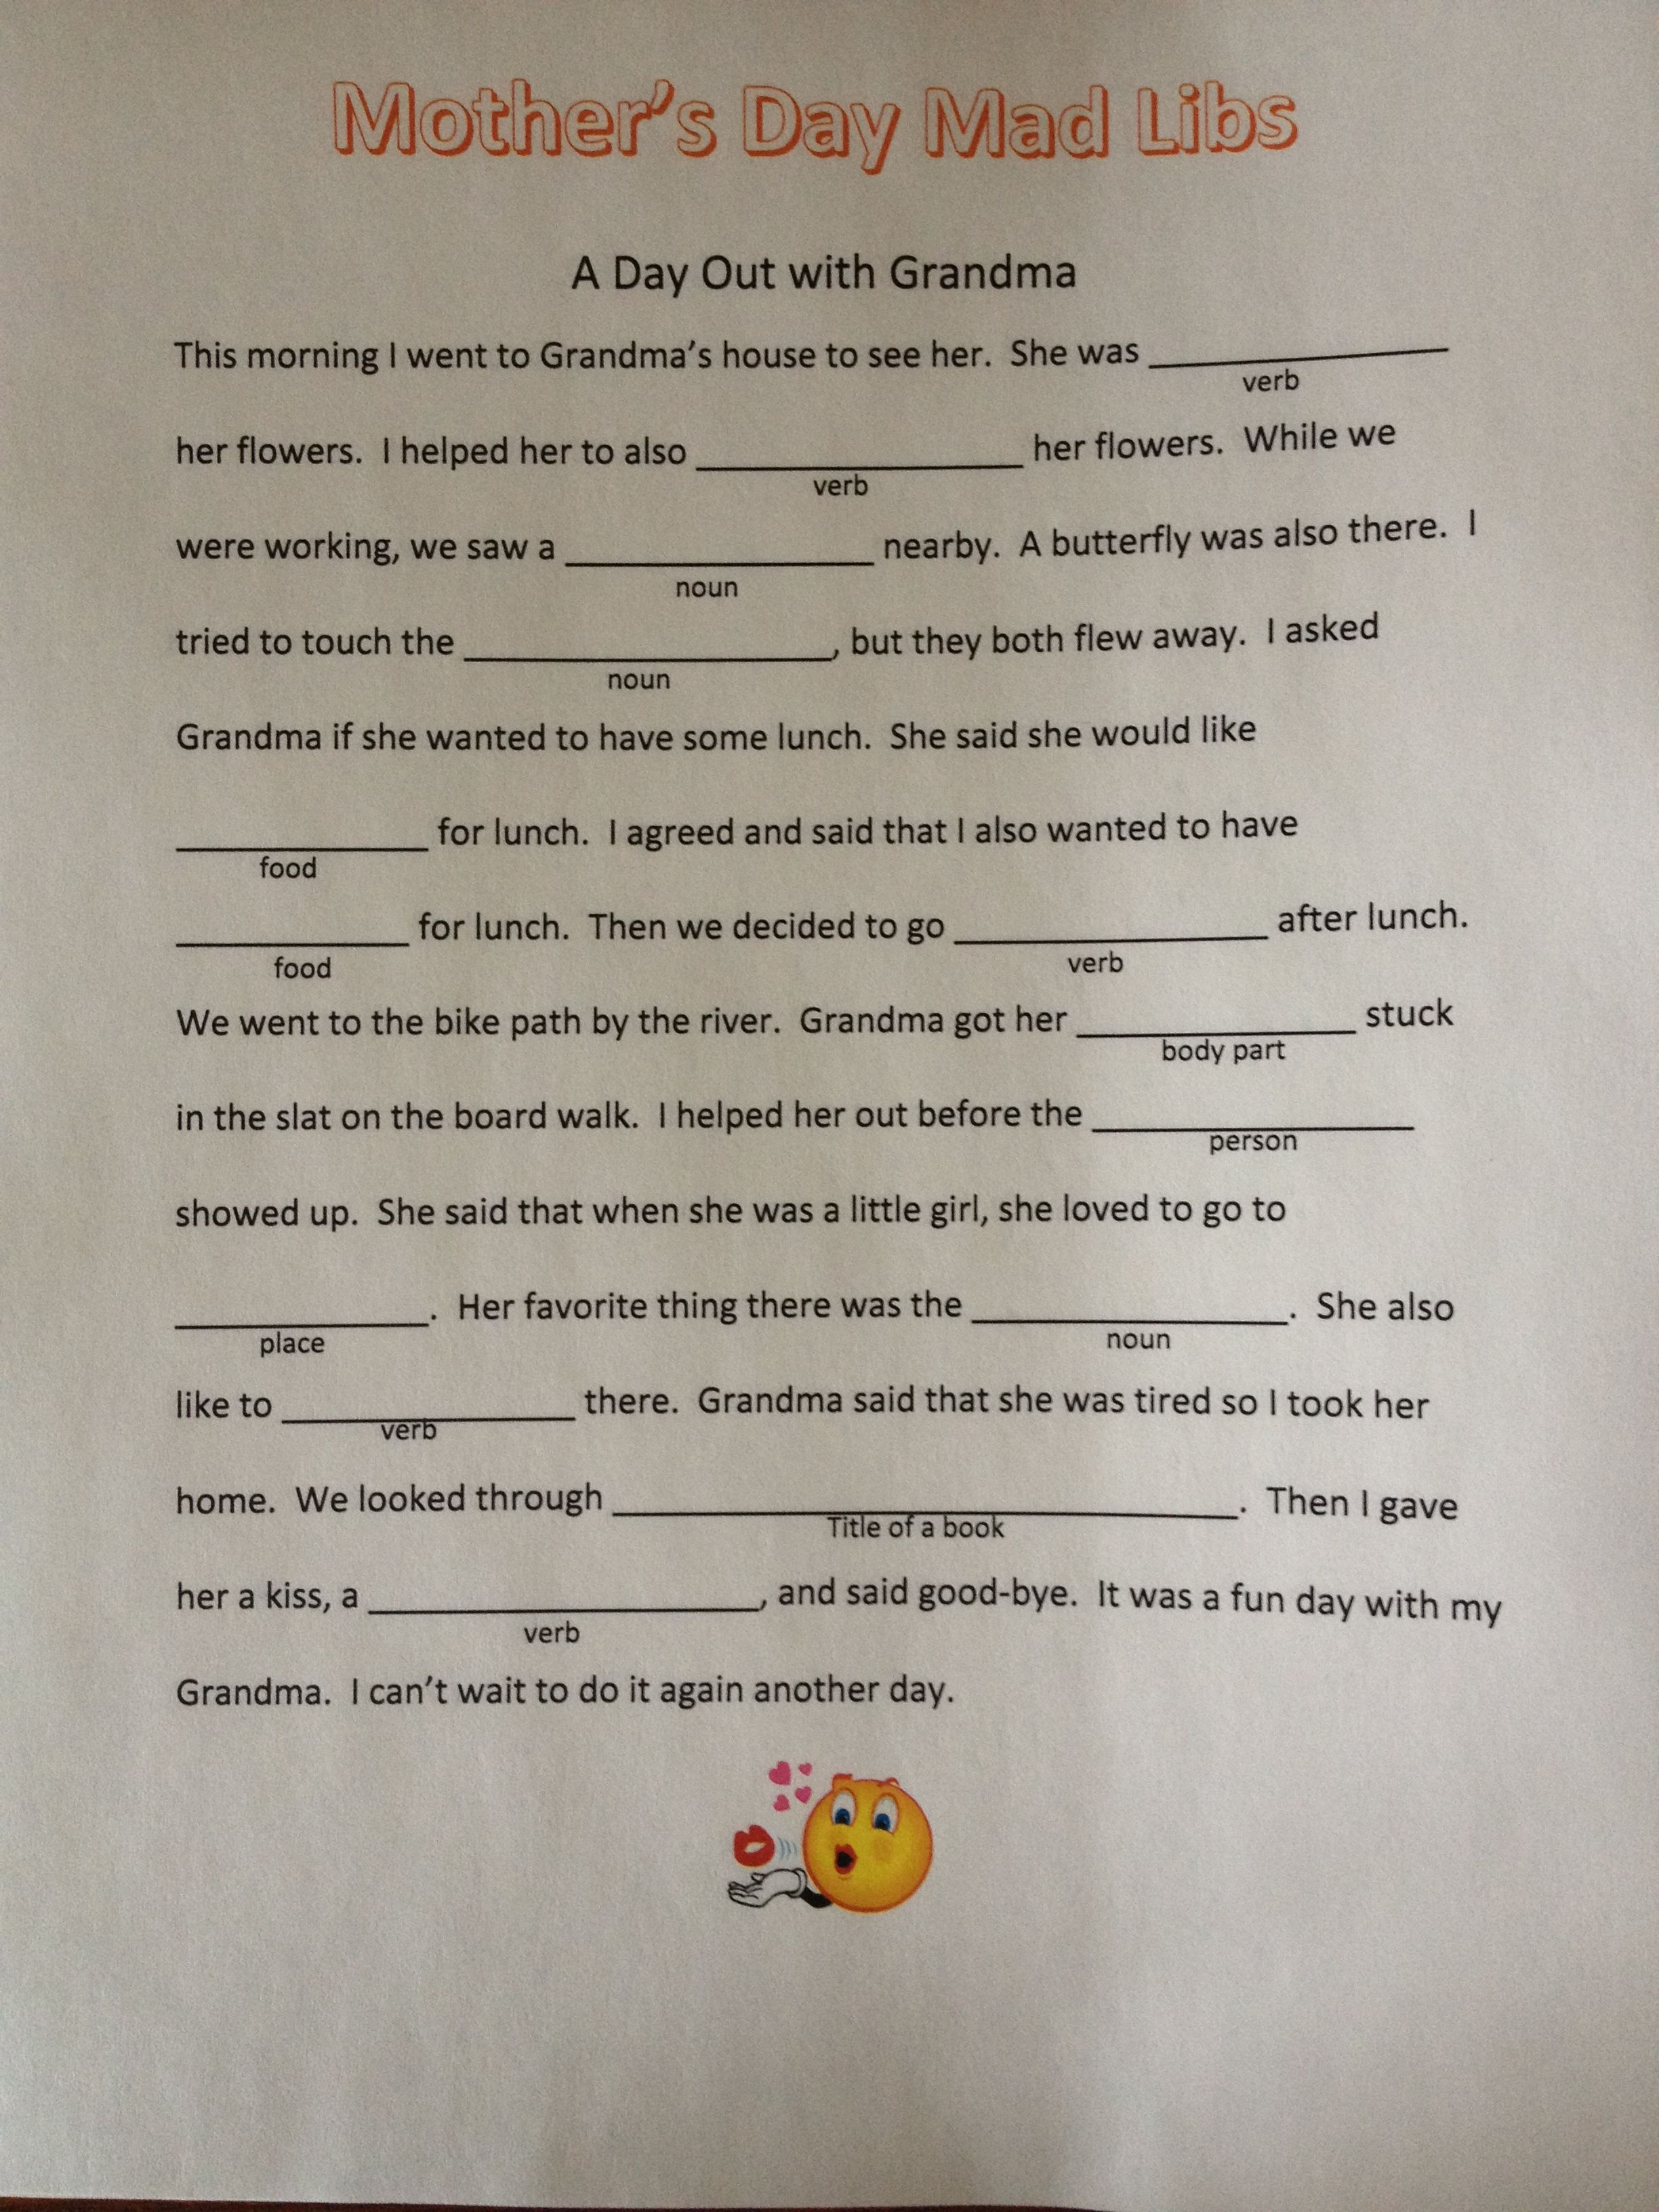 This Is A Cute Mad Lib That I Created For My Kids To